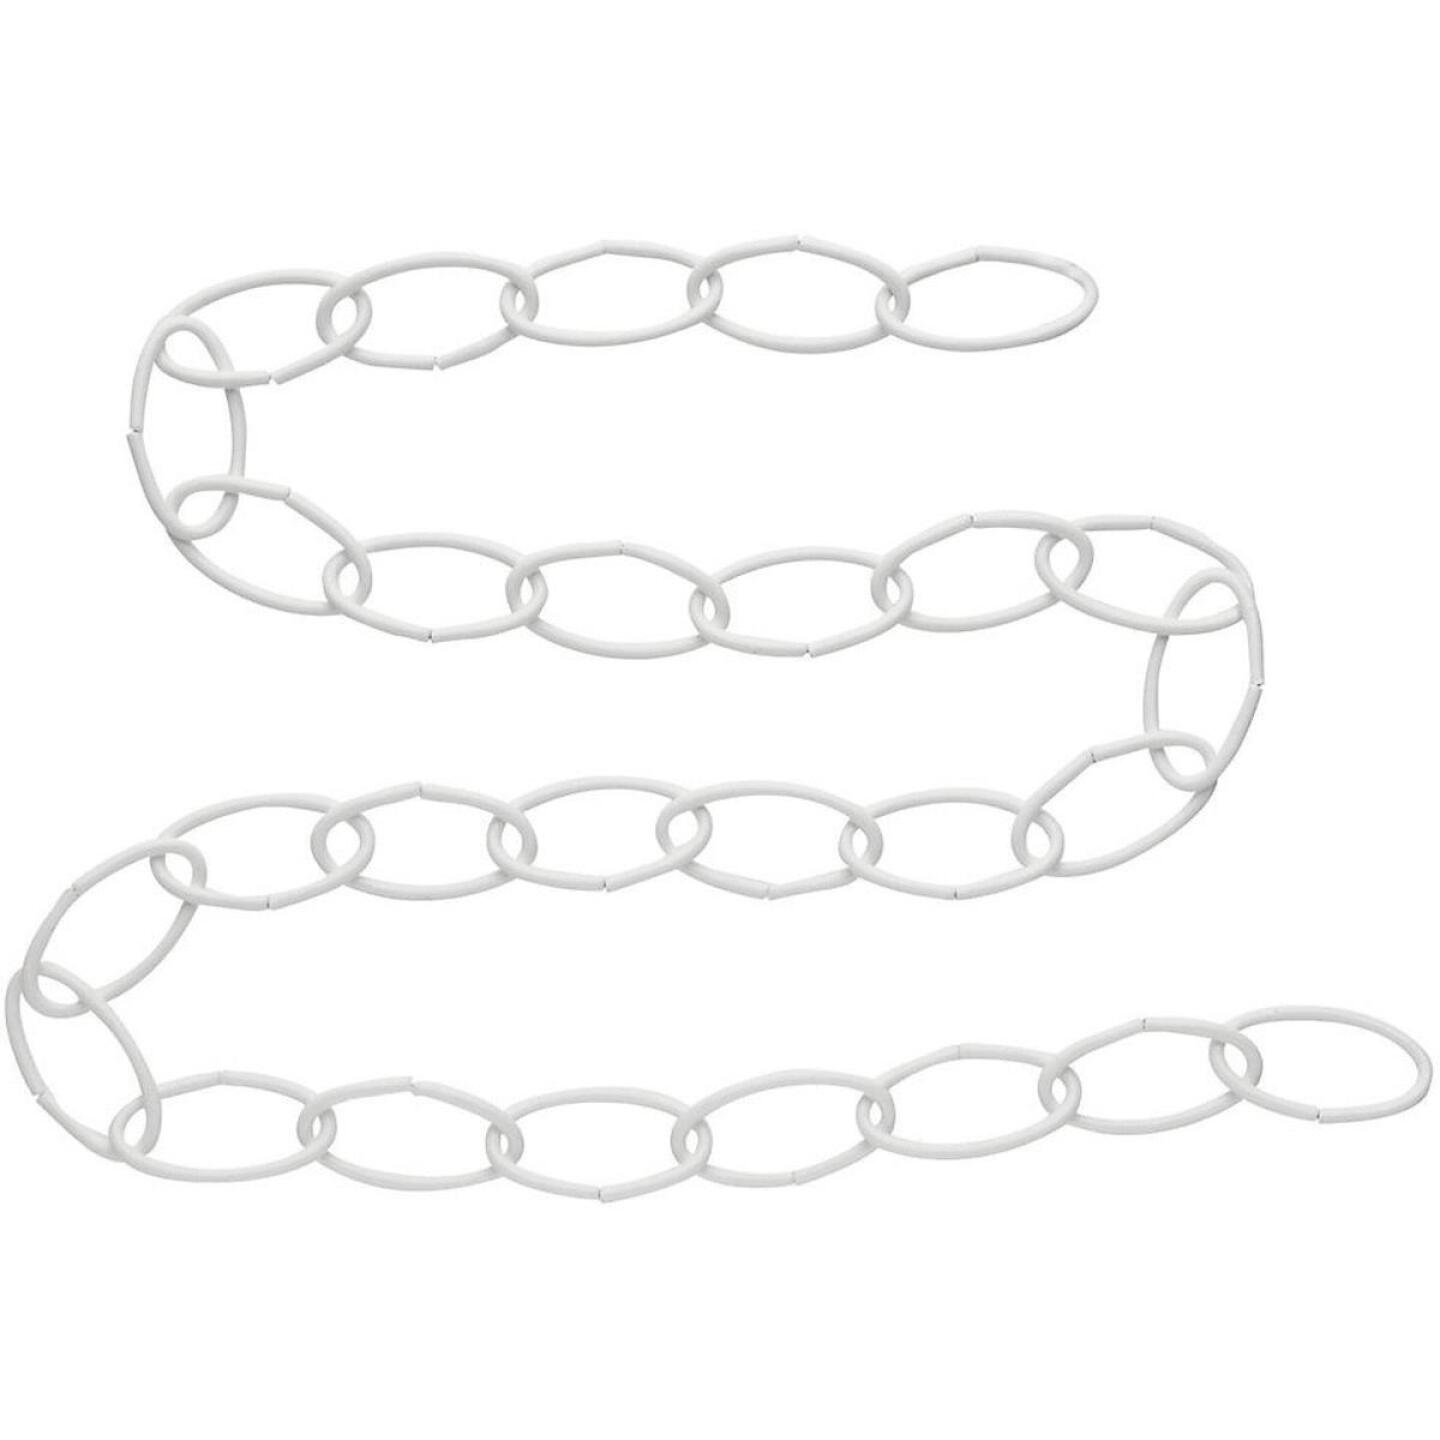 National 36 In. White Metal Hanging Plant Extension Chain Image 1